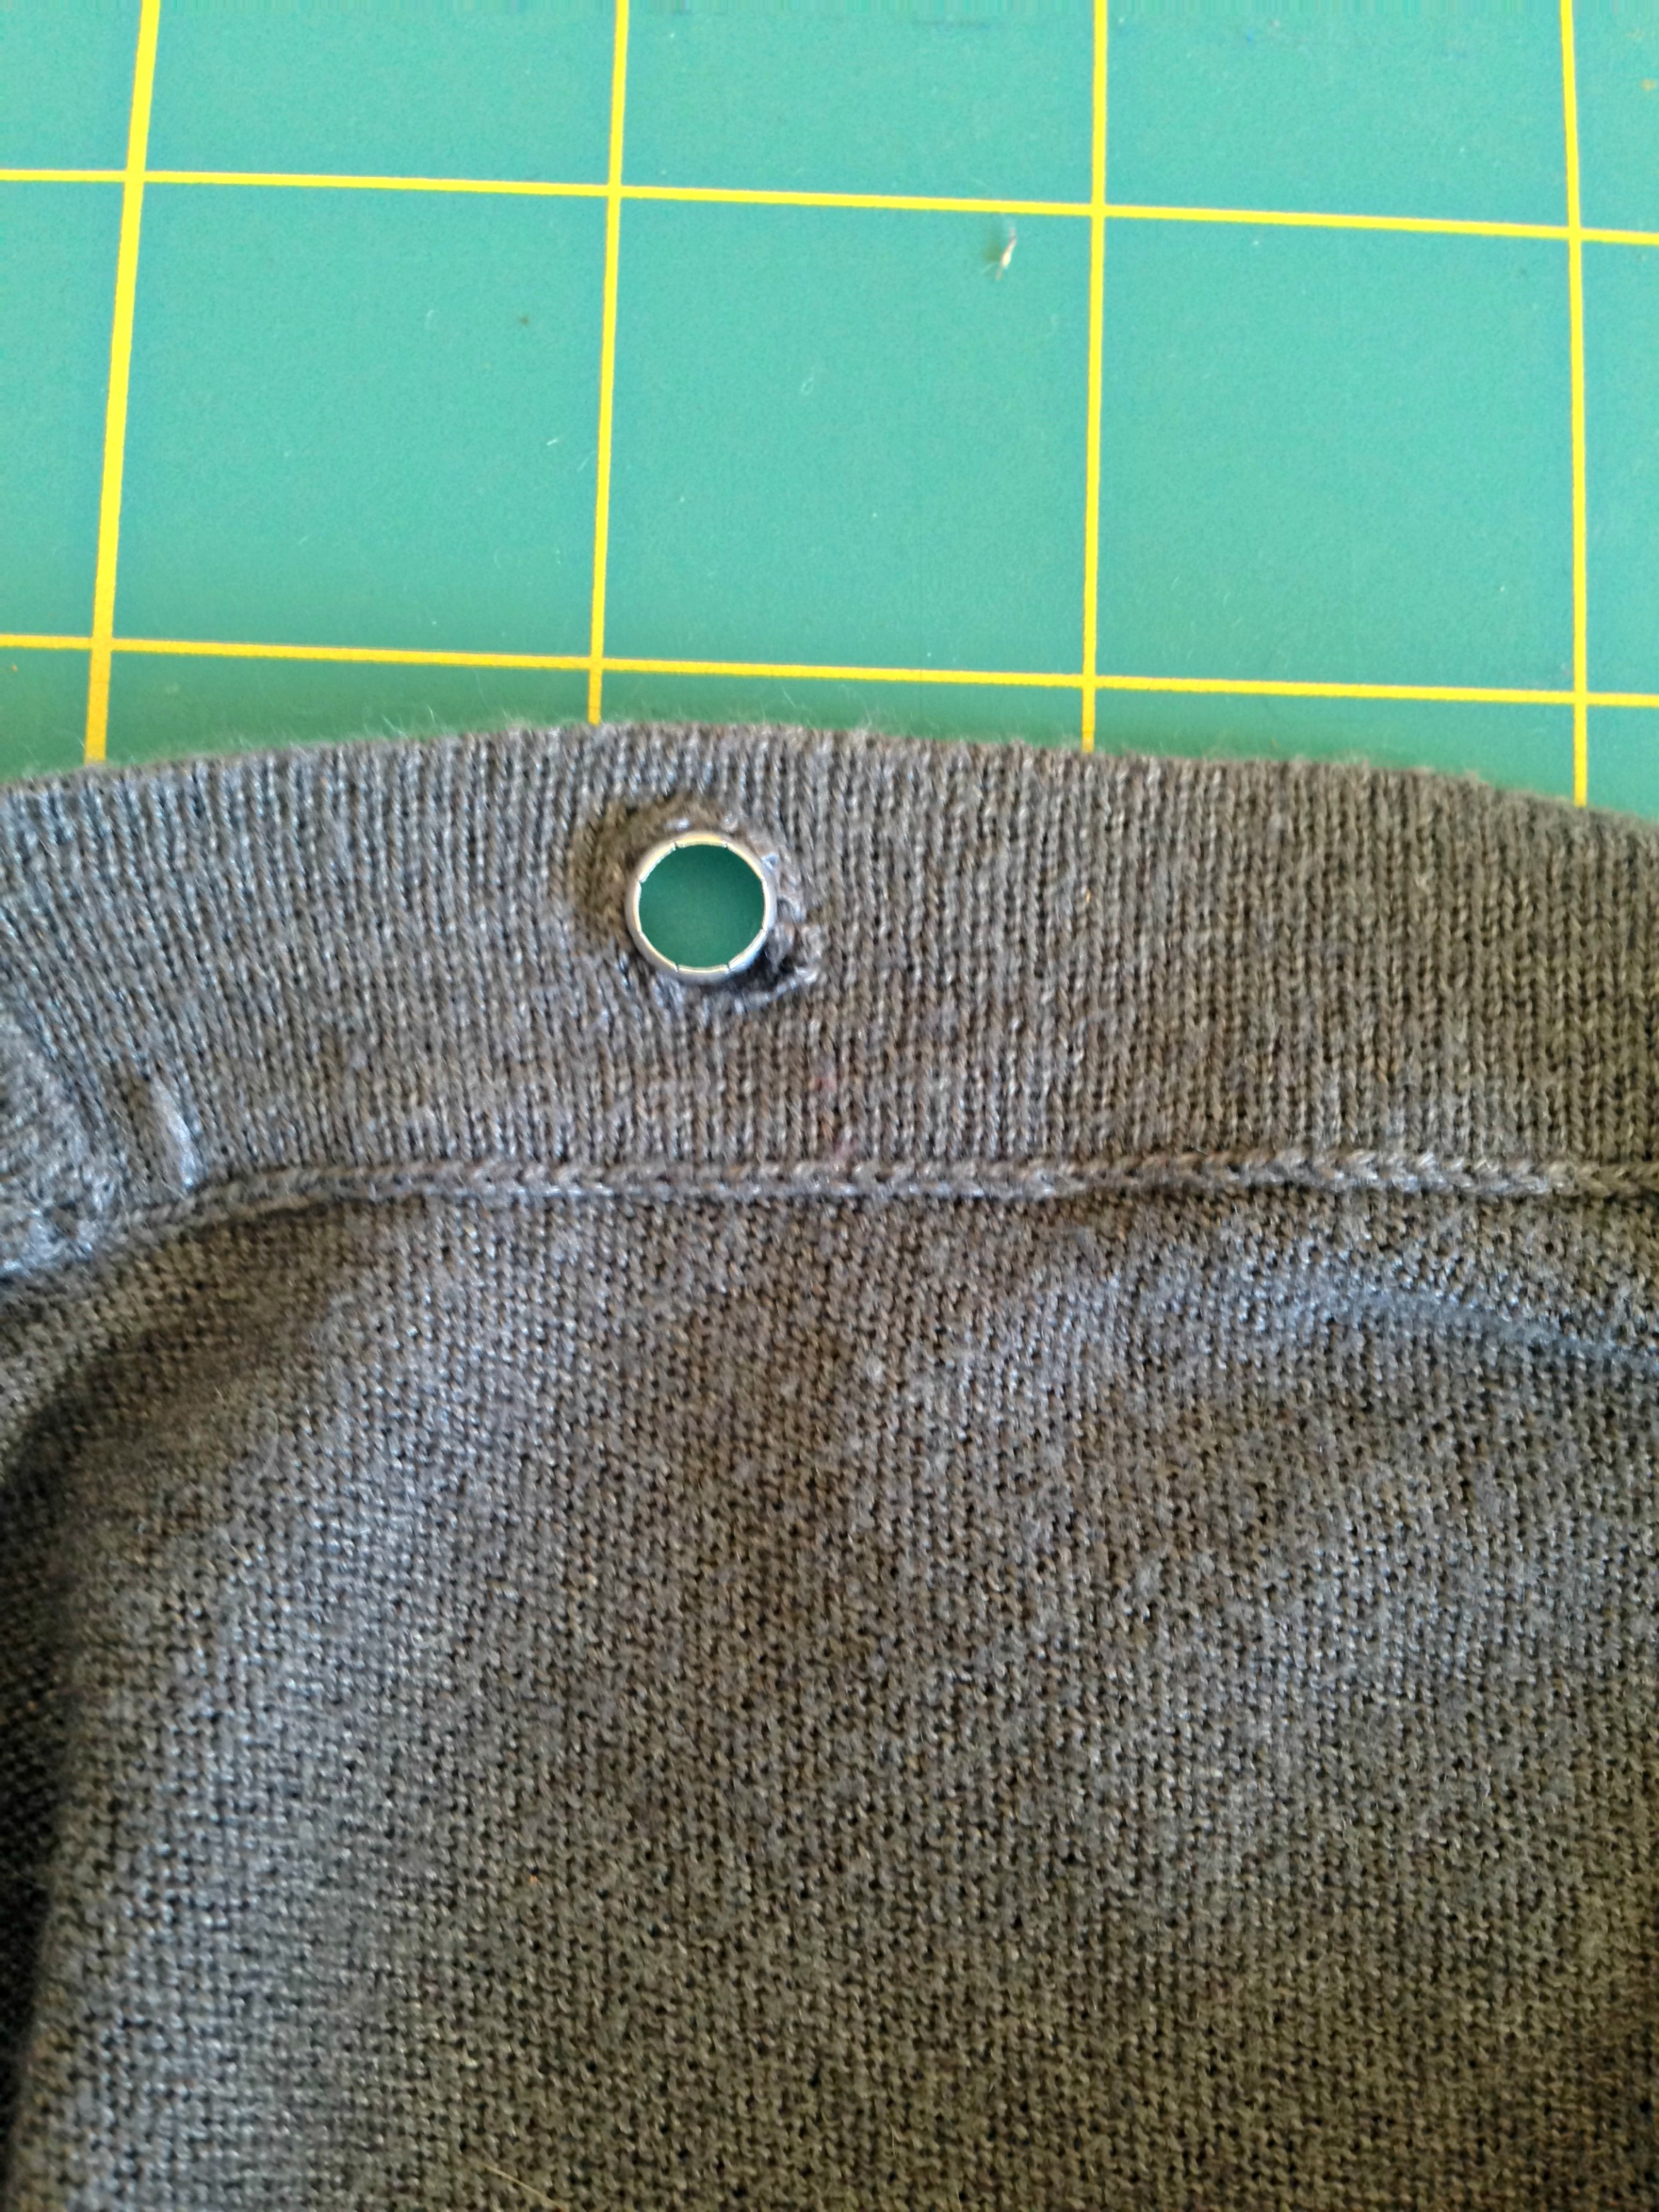 how to put grommets in fabric without tool